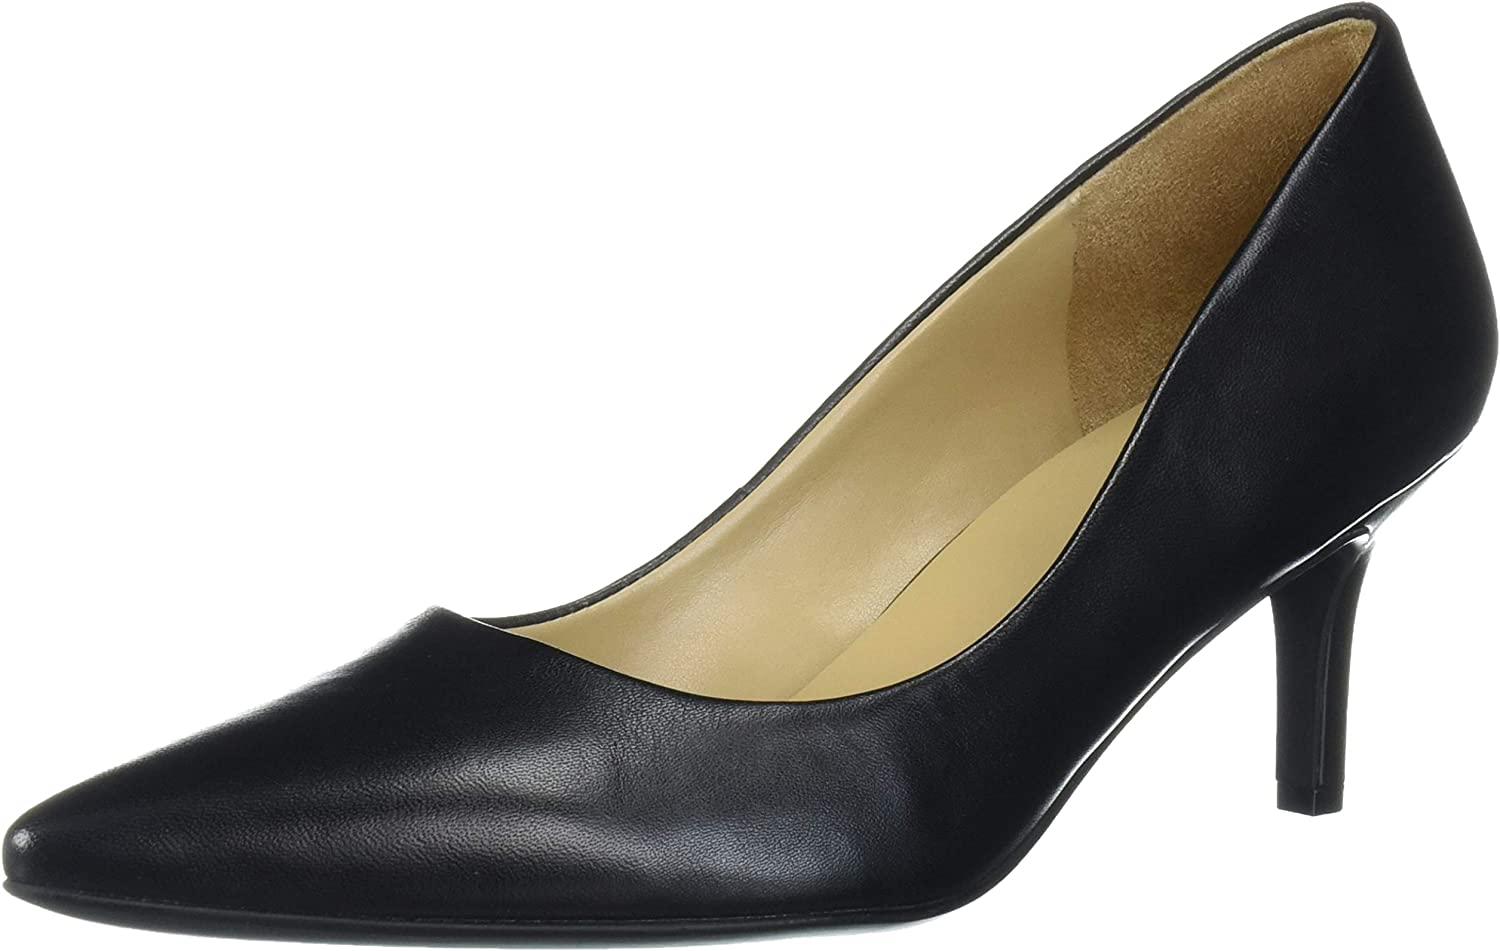 Free shipping Ranking TOP6 Naturalizer Women's Pump Everly